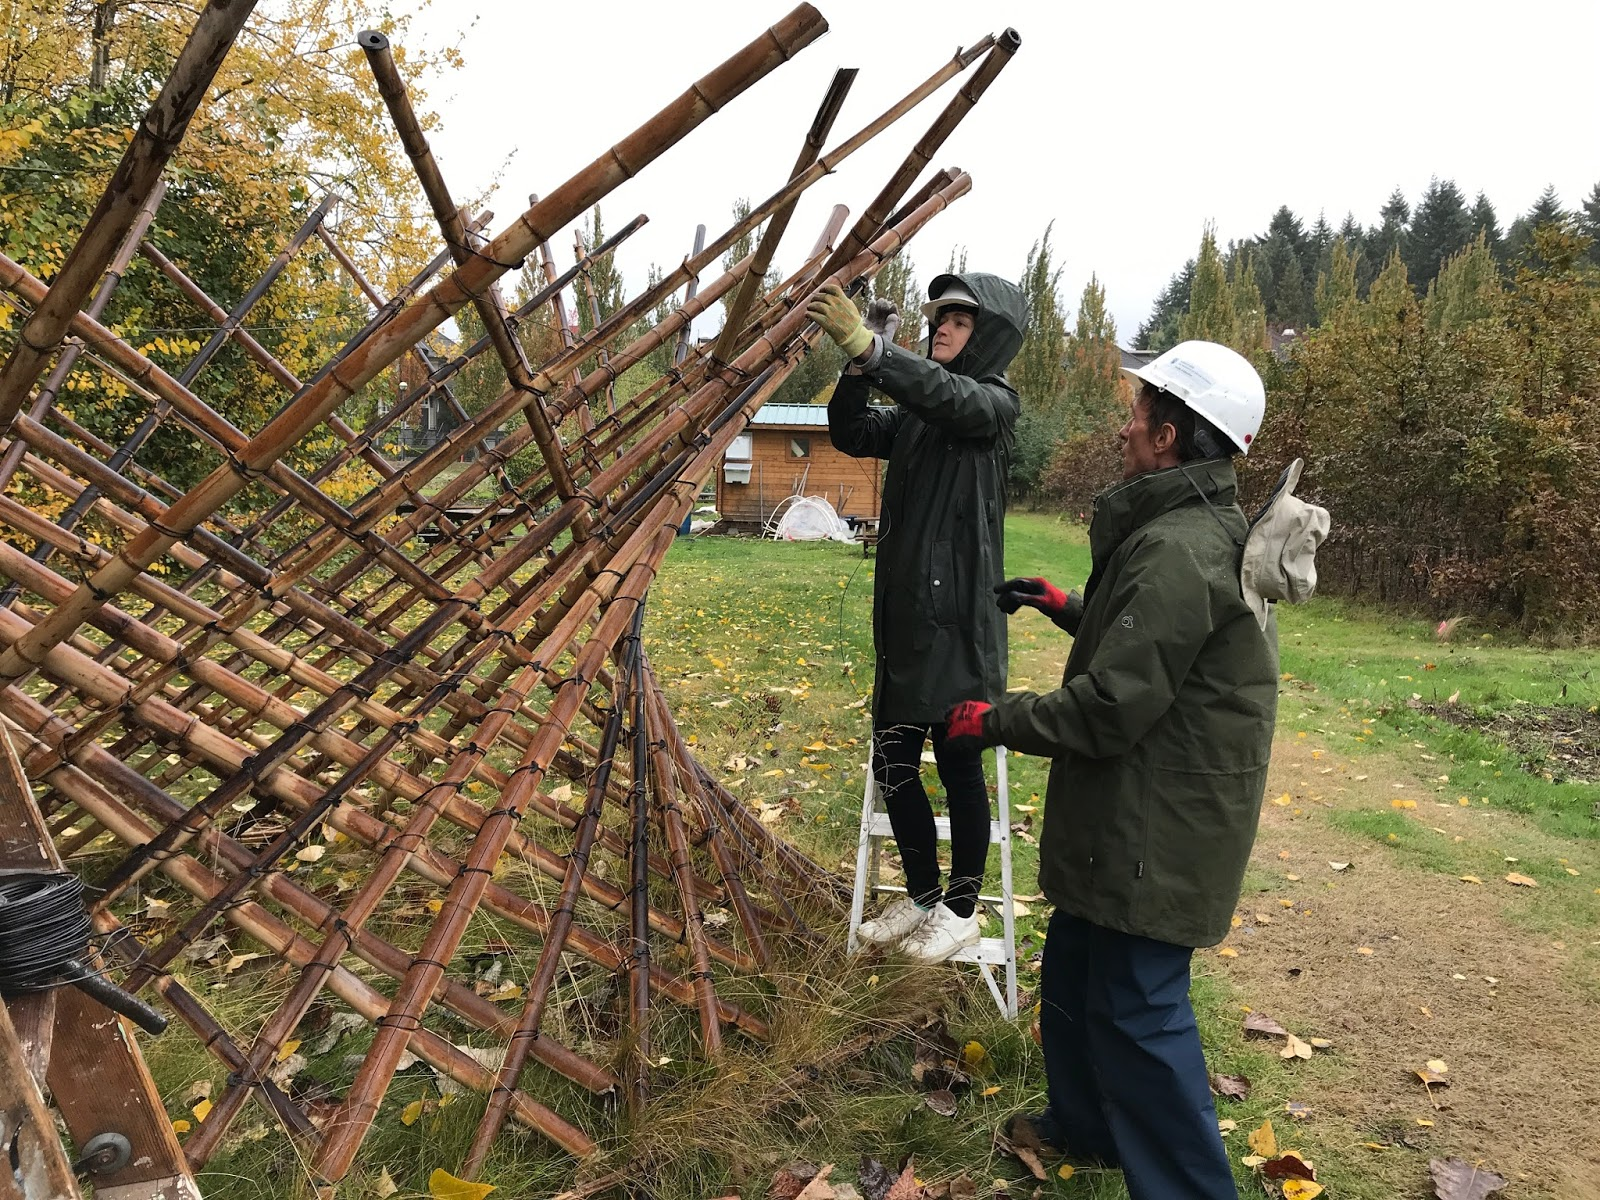 The Orchard Garden: Completing the installation of Hyperboloid Gate #2